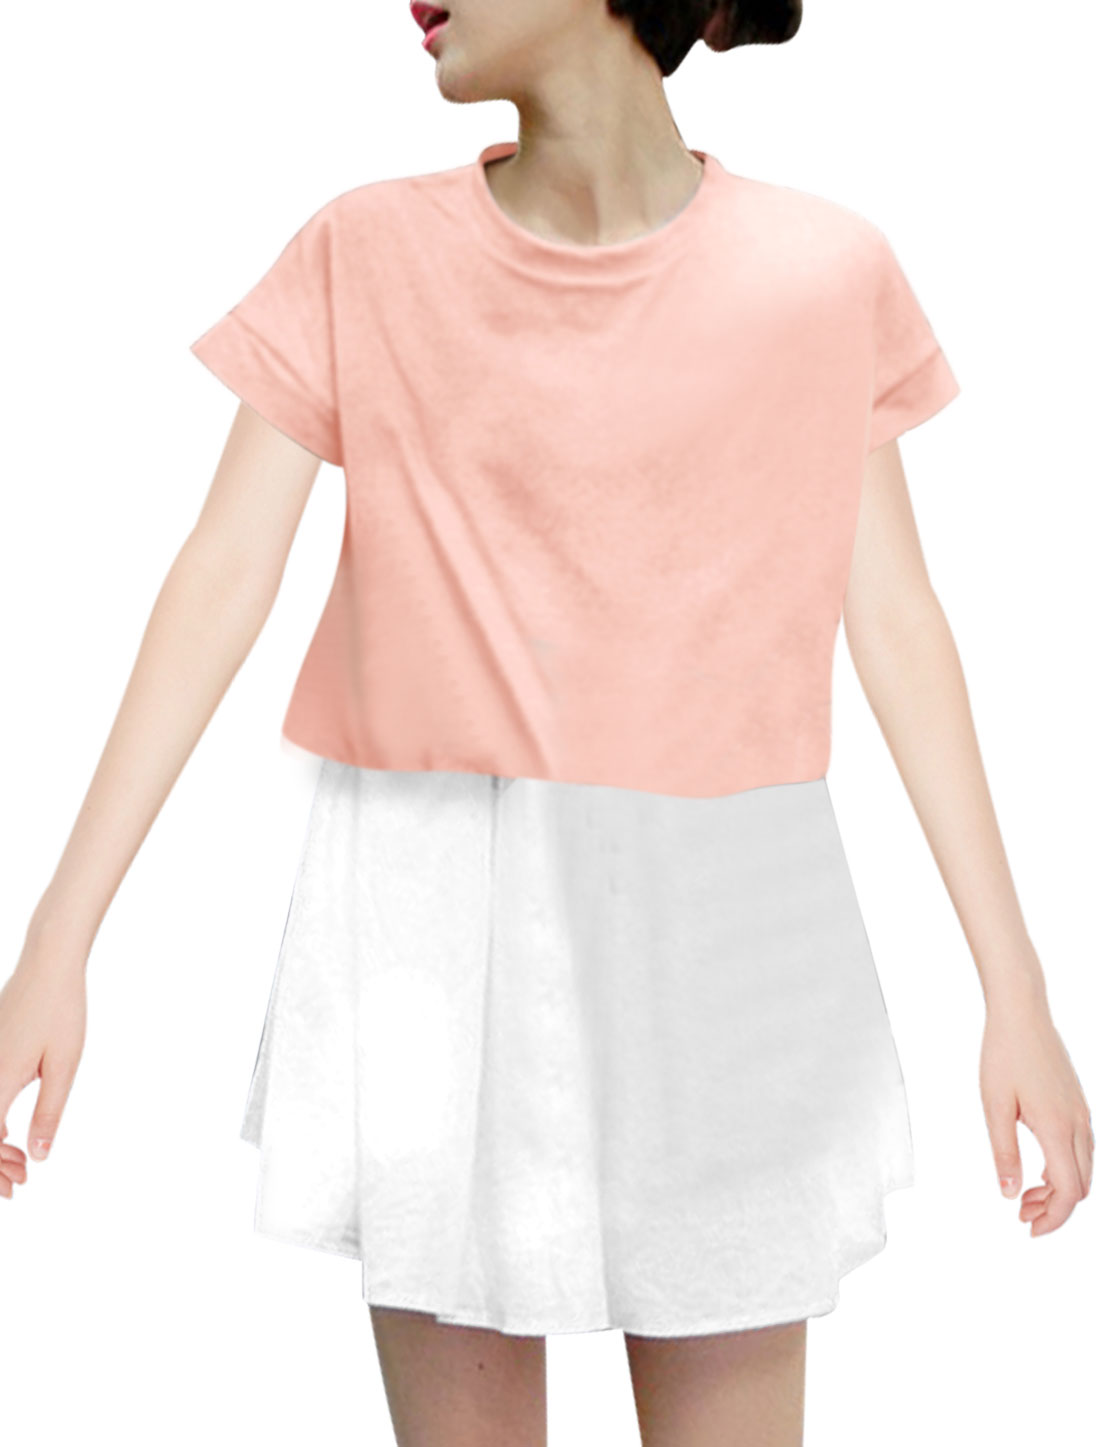 Lady Crew Neck Short Batwing Sleeve Layered Dress Pink XS